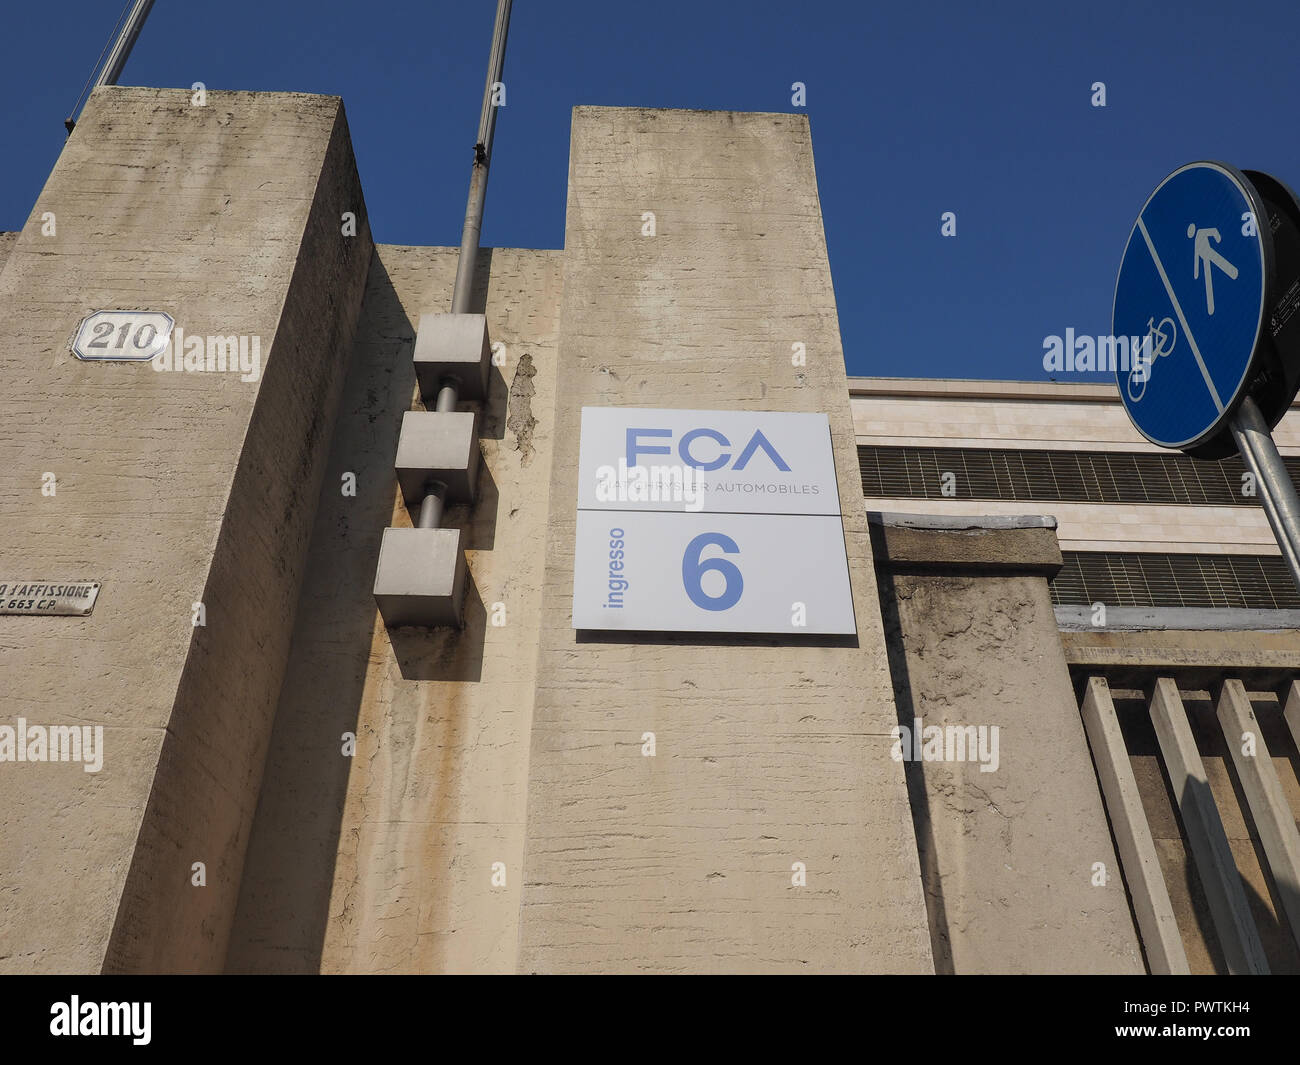 TURIN, ITALY - CIRCA SEPTEMBER 2018: Fiat Chrysler Automobiles (FCA) Mirafiori car factory for Fiat, Lancia, Alfa Romeo, Jeep and Abarth brands - Stock Image